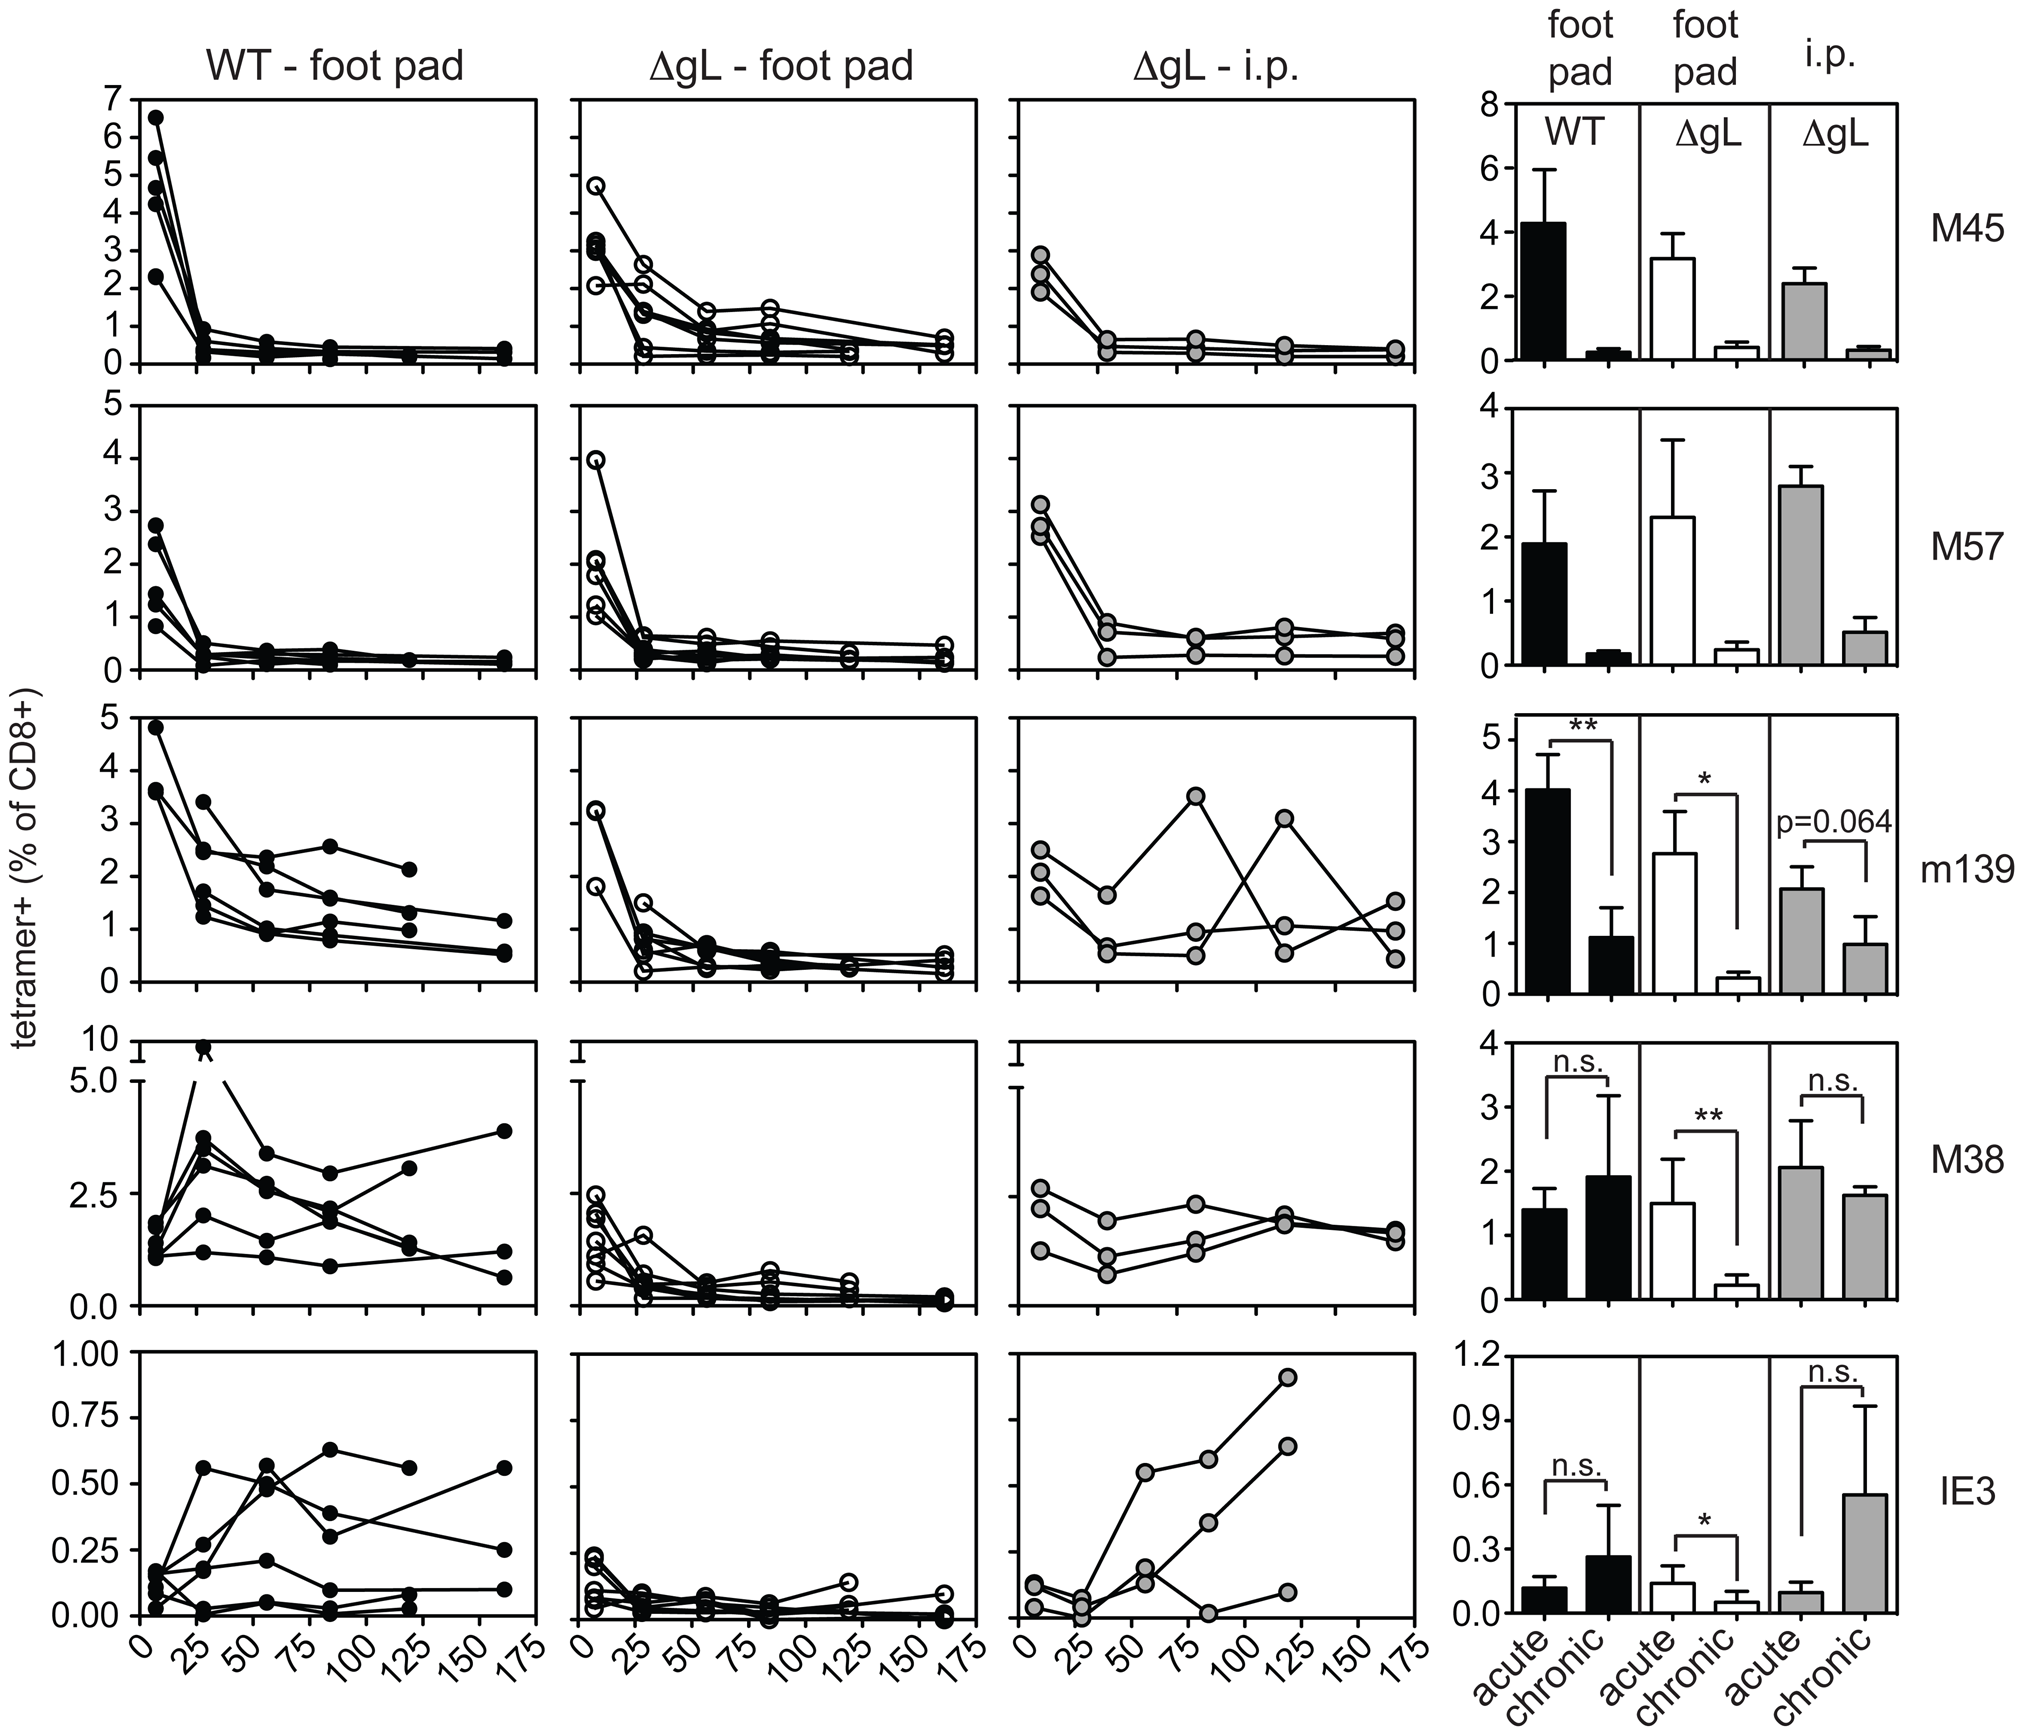 Foot pad injection of ΔgL MCMV fails to result in maintenance or inflation of m139-, M38- or IE3-specific CD8+ T cells.